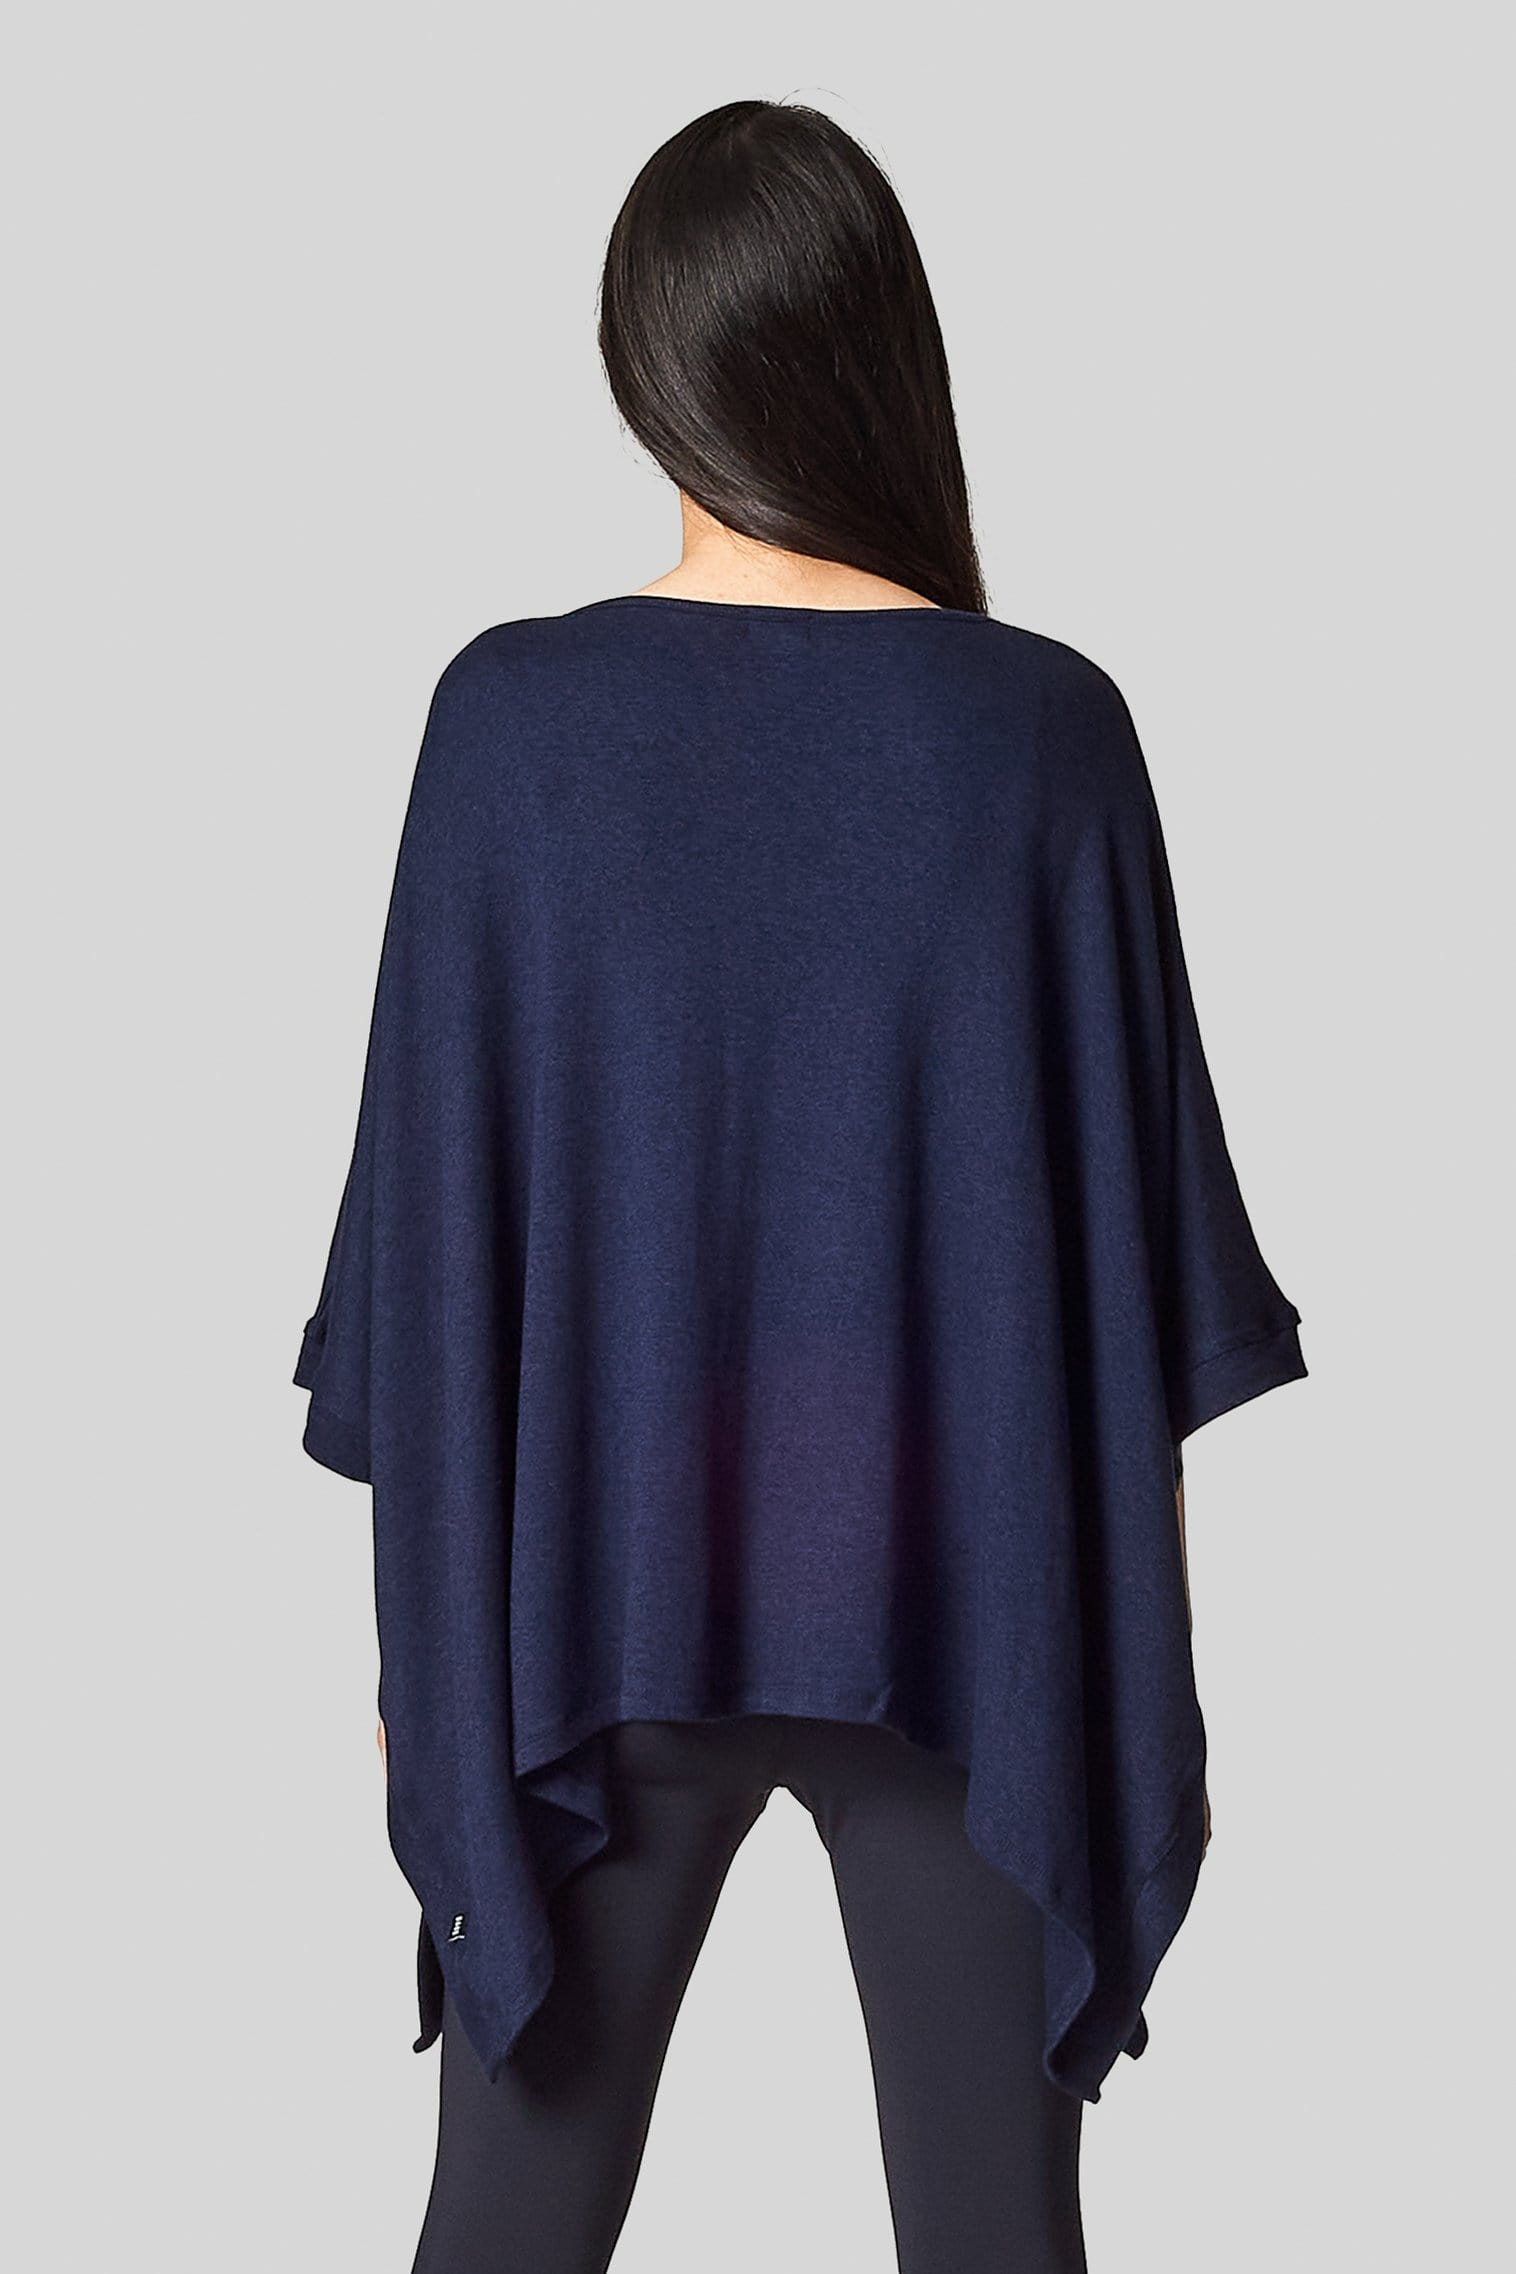 The back view of a woman wearing a navy blue poncho.